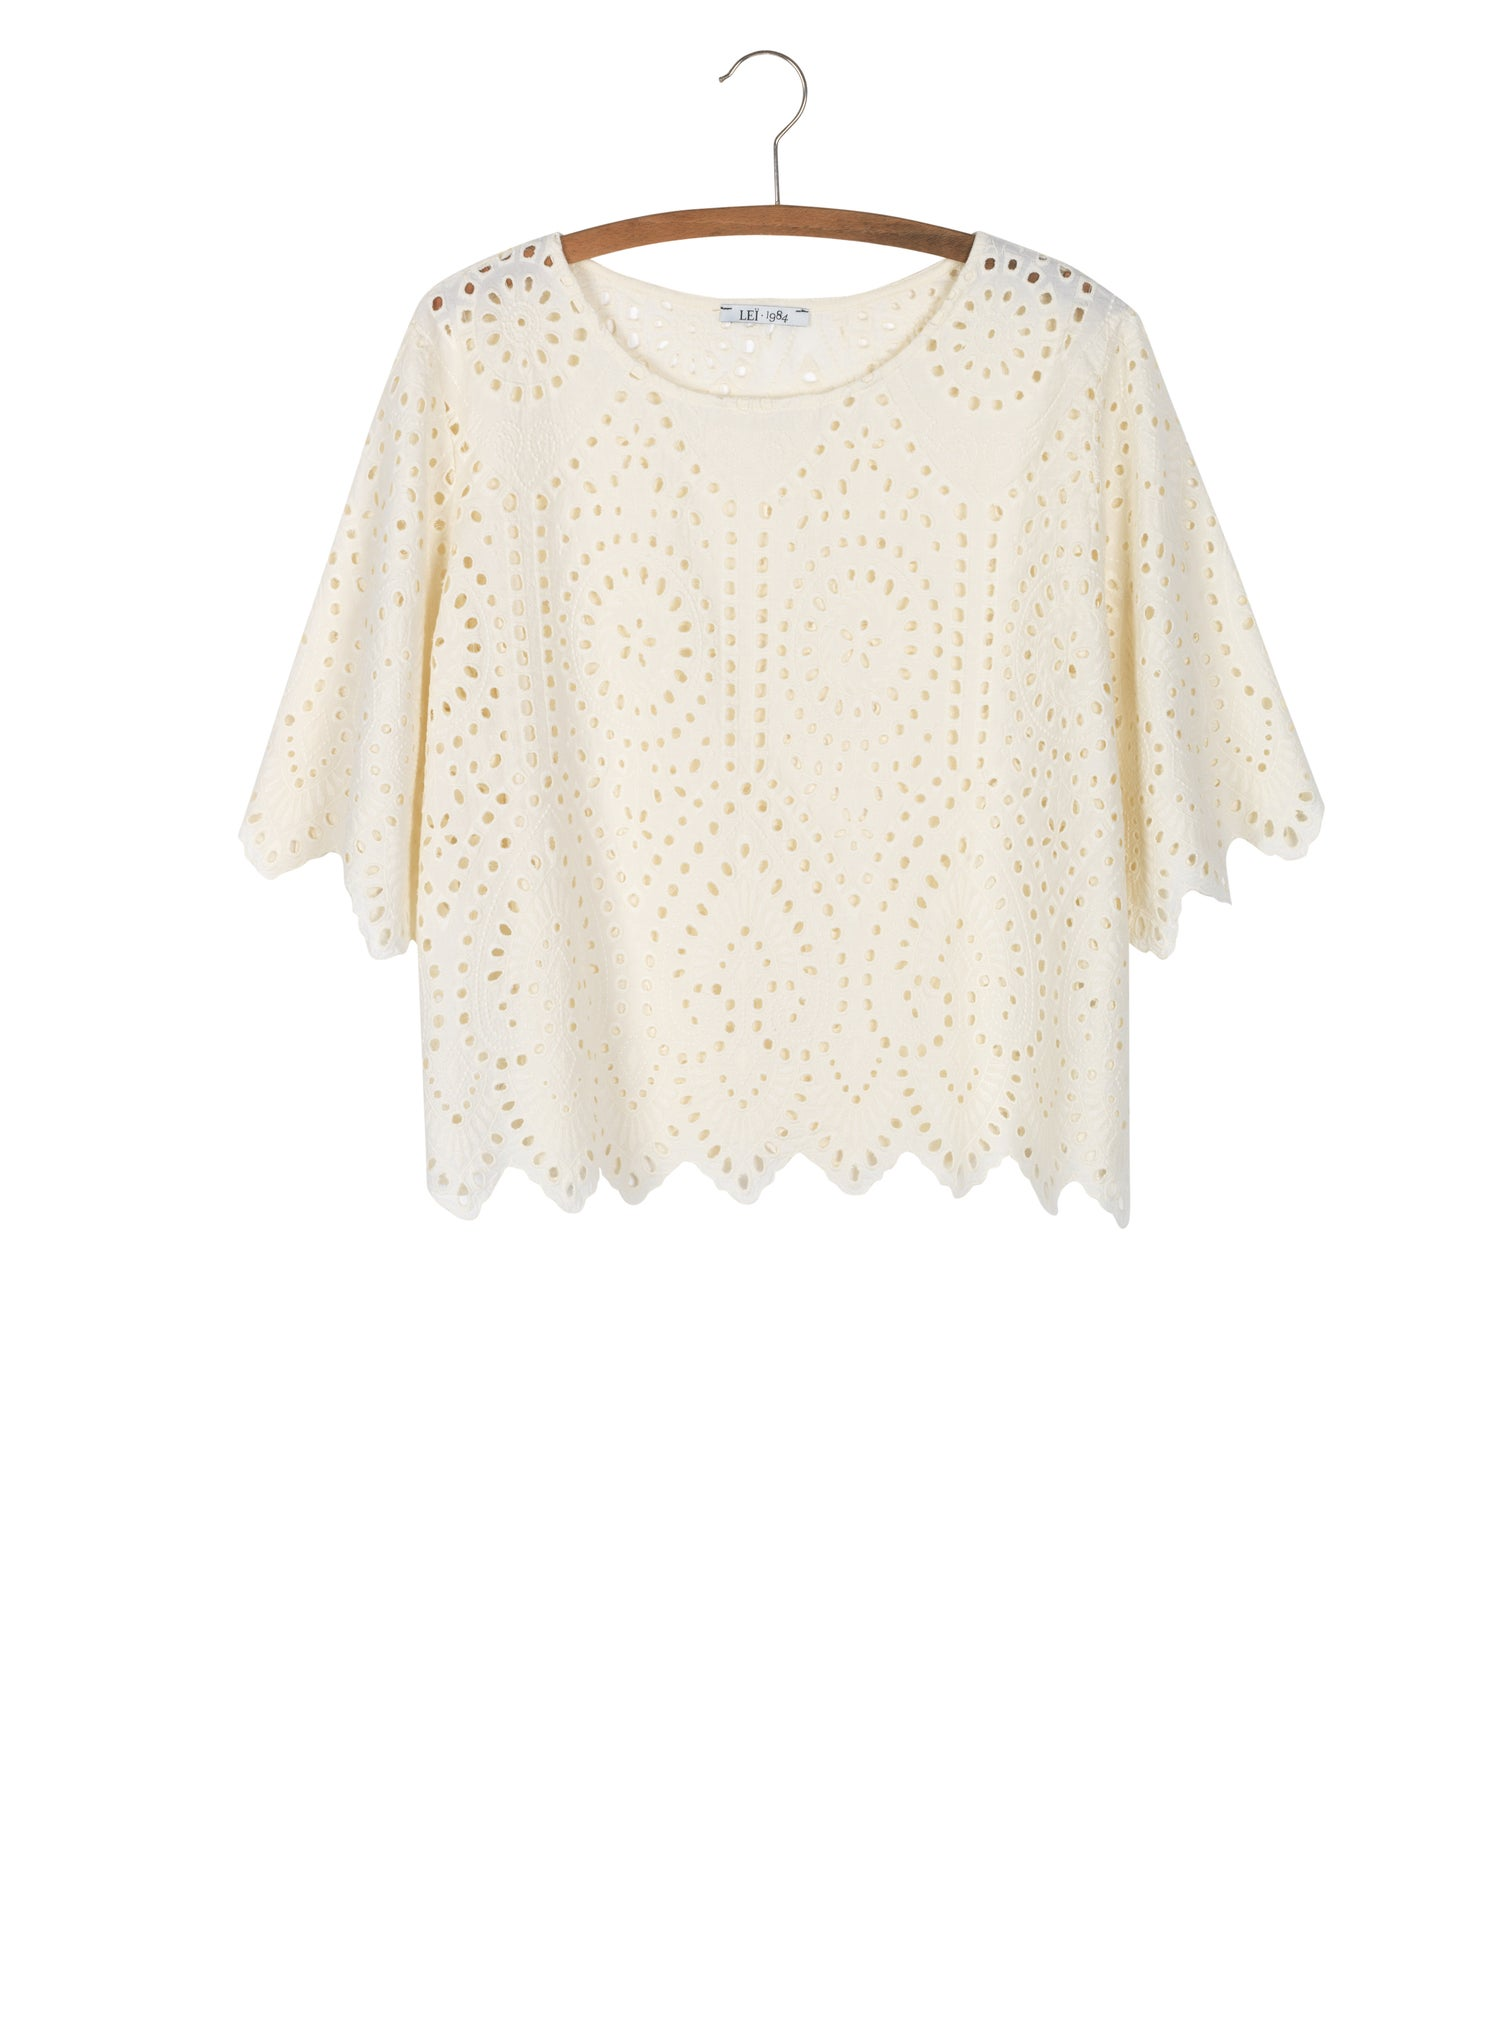 Image of Top MARIA 125€ -50%